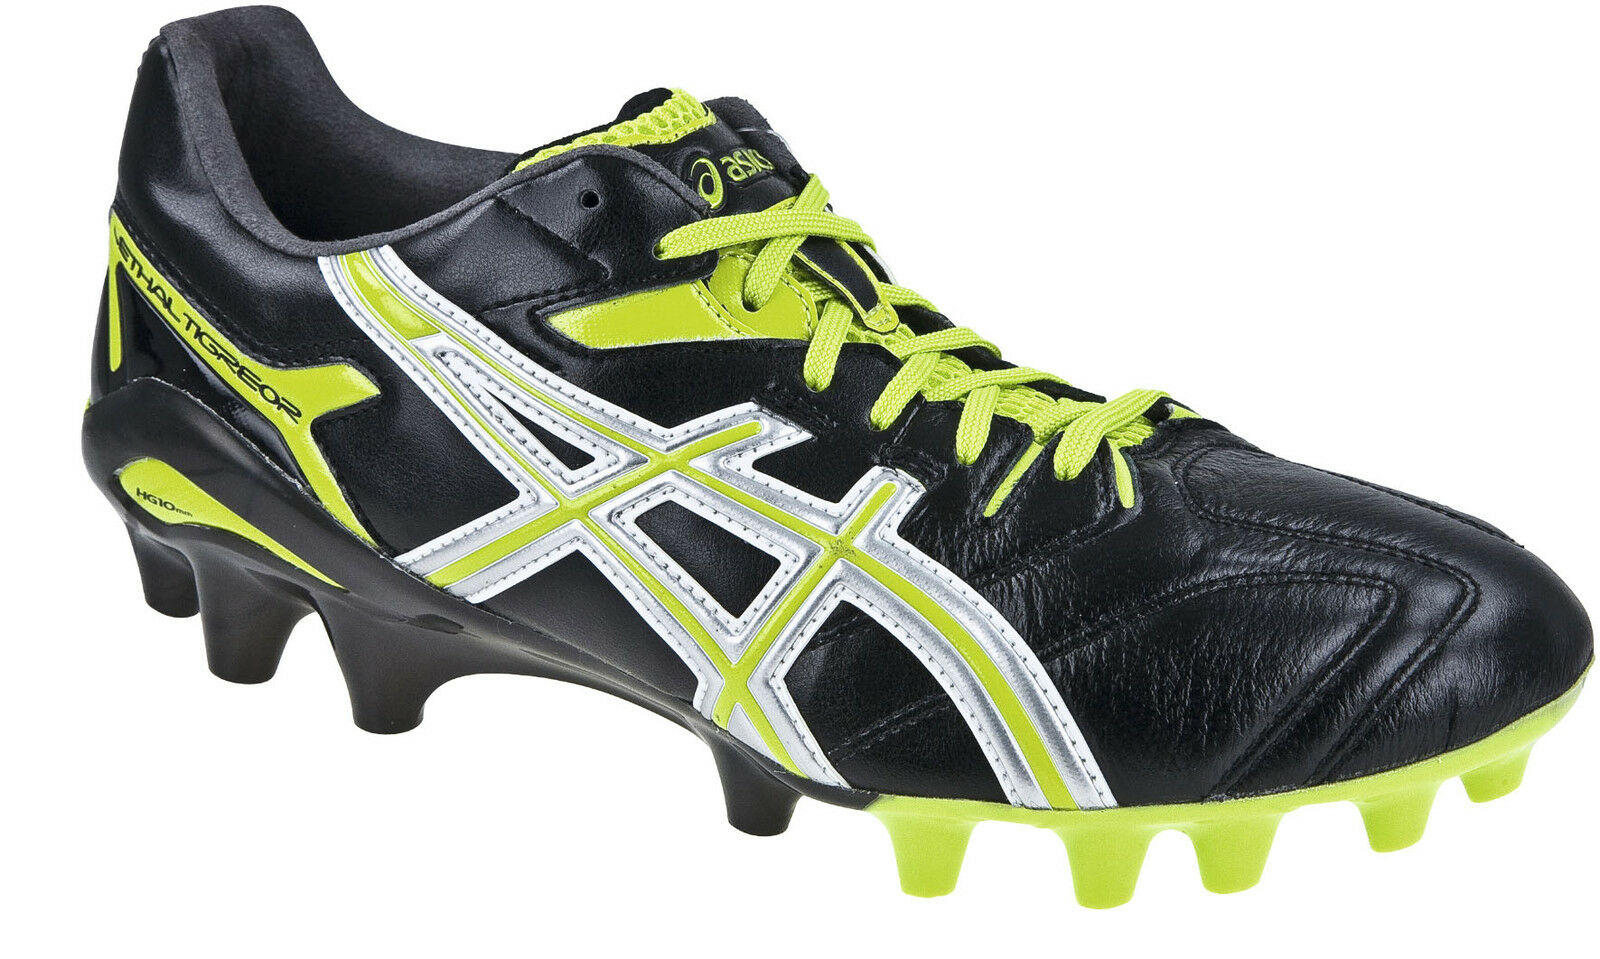 Asics Lethal Tigreor 6 IT Mens Football Boot  (9093)     179.00    Free Postage